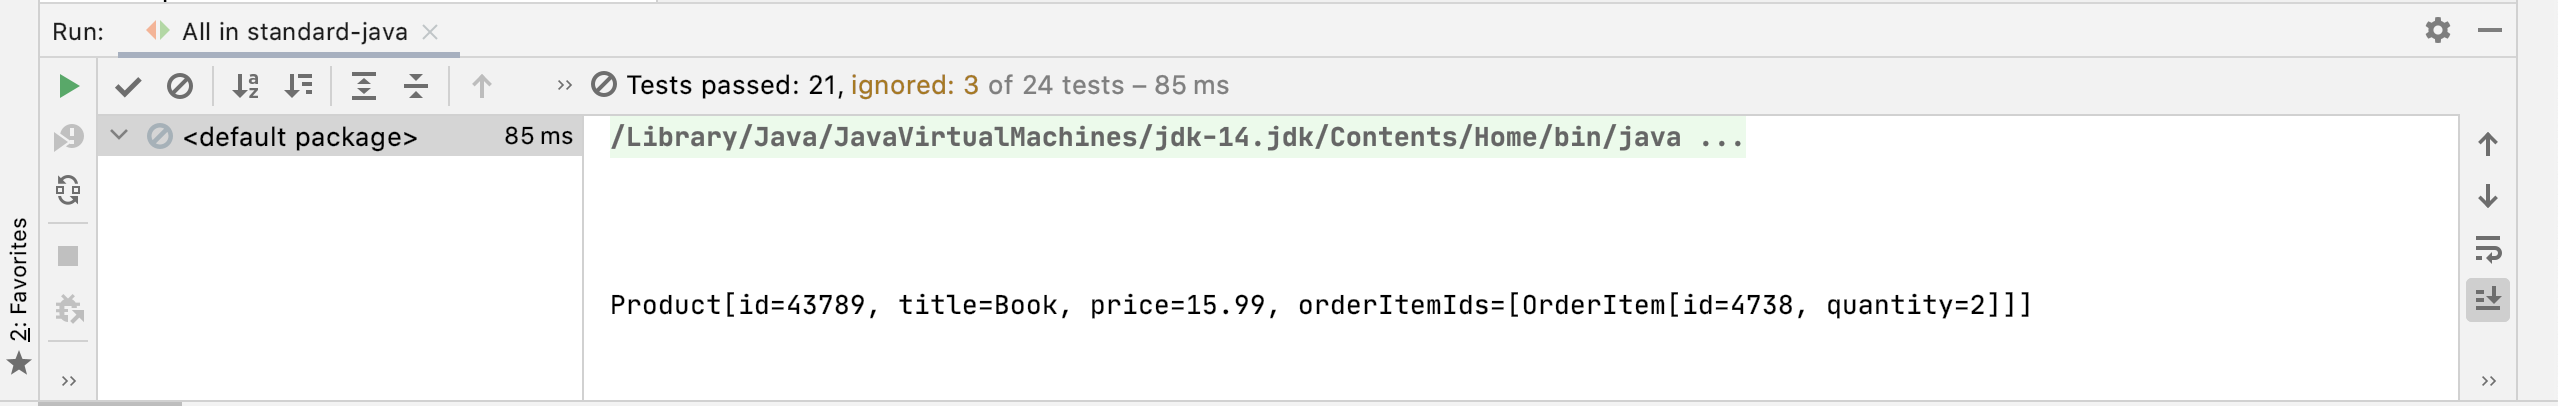 JUnit Hide Passed and Ignored Tests